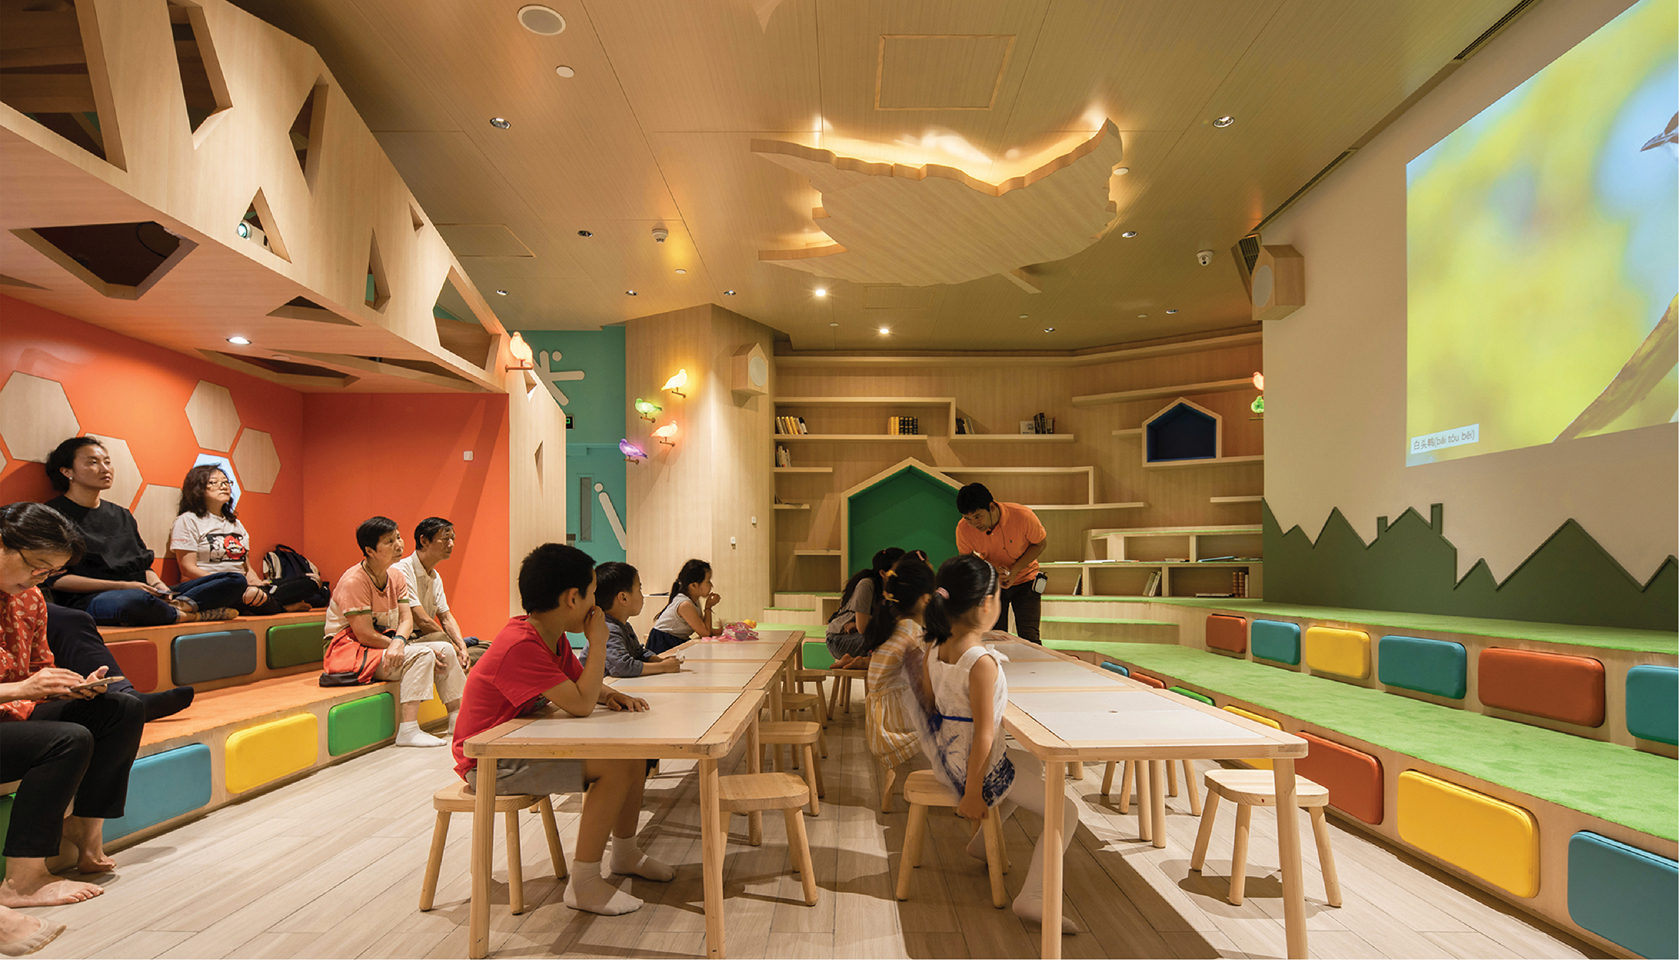 SPARK completes new family social space in retail mall